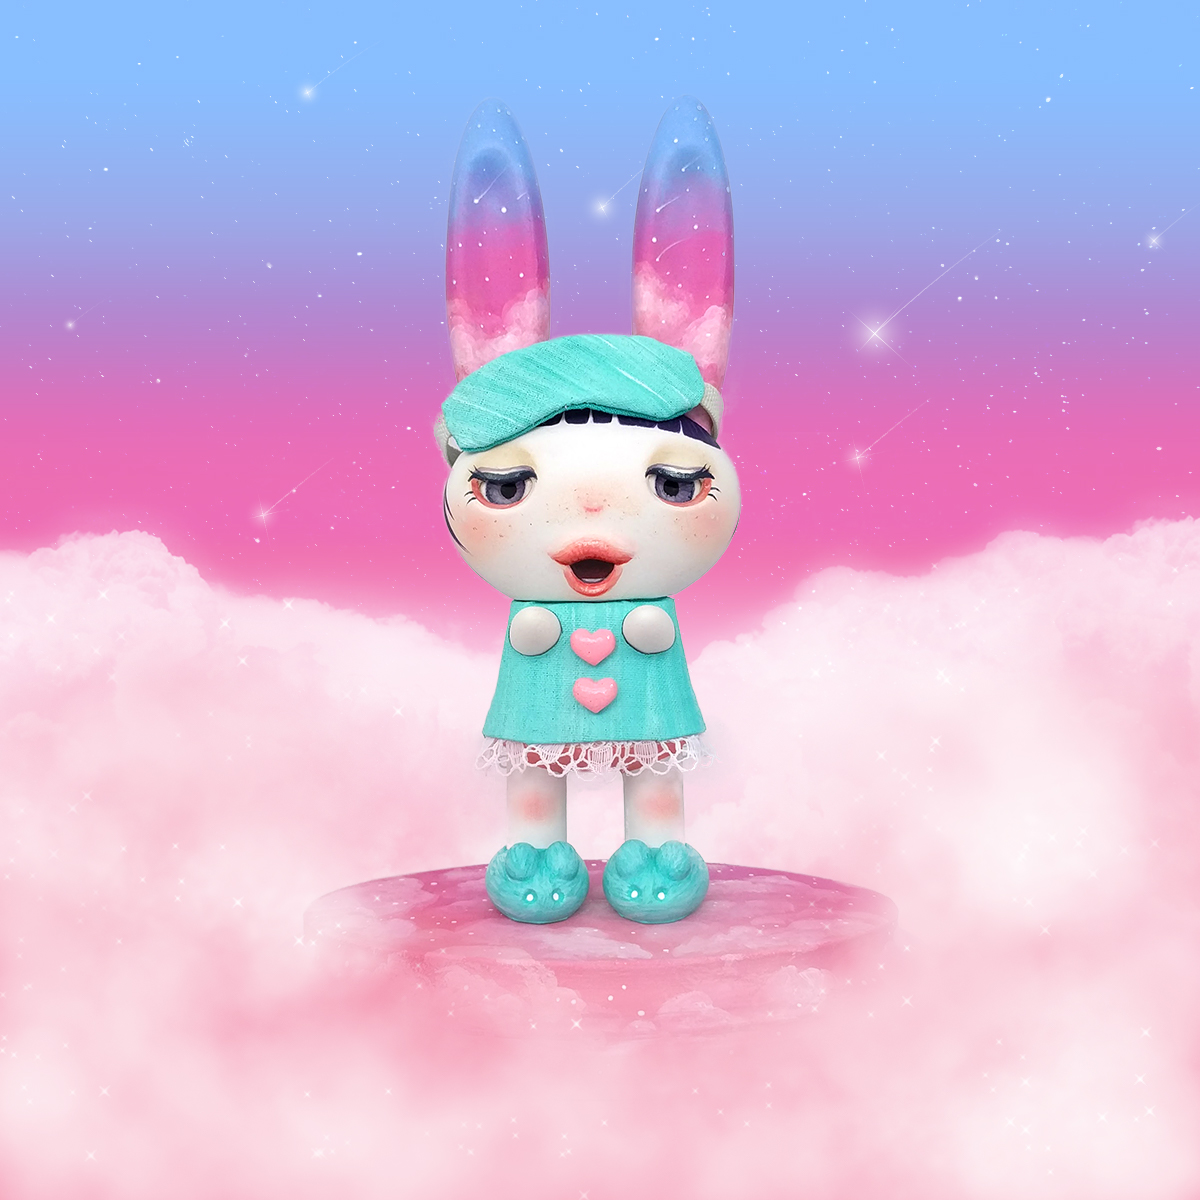 Hi Friends I Would Like To Share With You All My Latest Custom Vinyl Toy Lullabye Luna She Was Created From Peter Katos Super Cute 6 Inch Bedtime